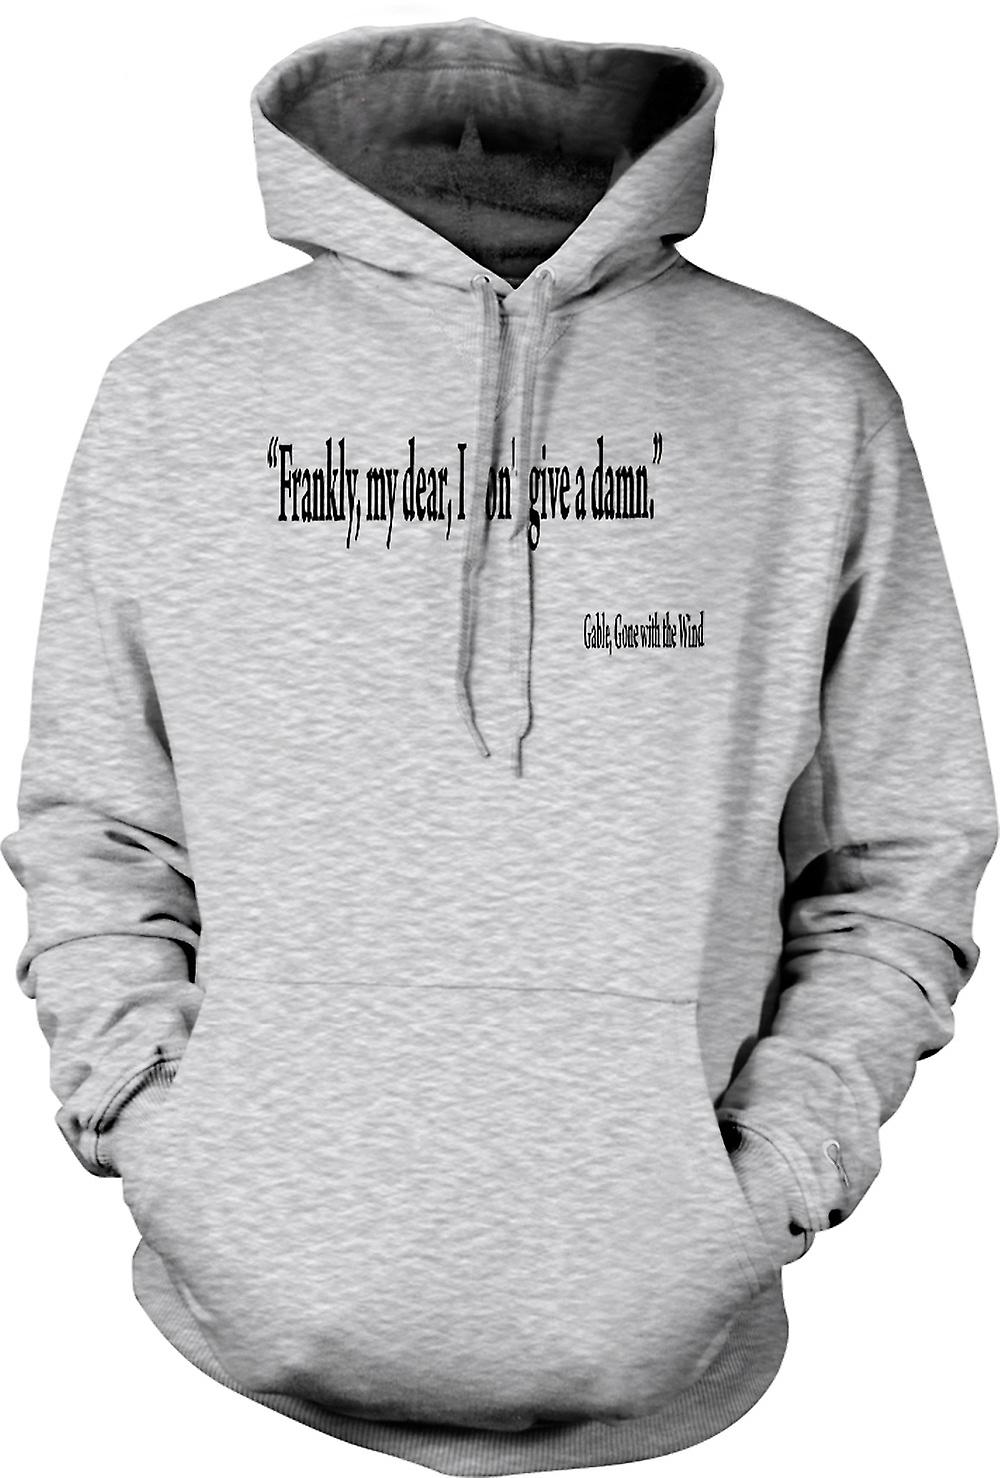 Mens Hoodie - Gone with the Wind - Gable